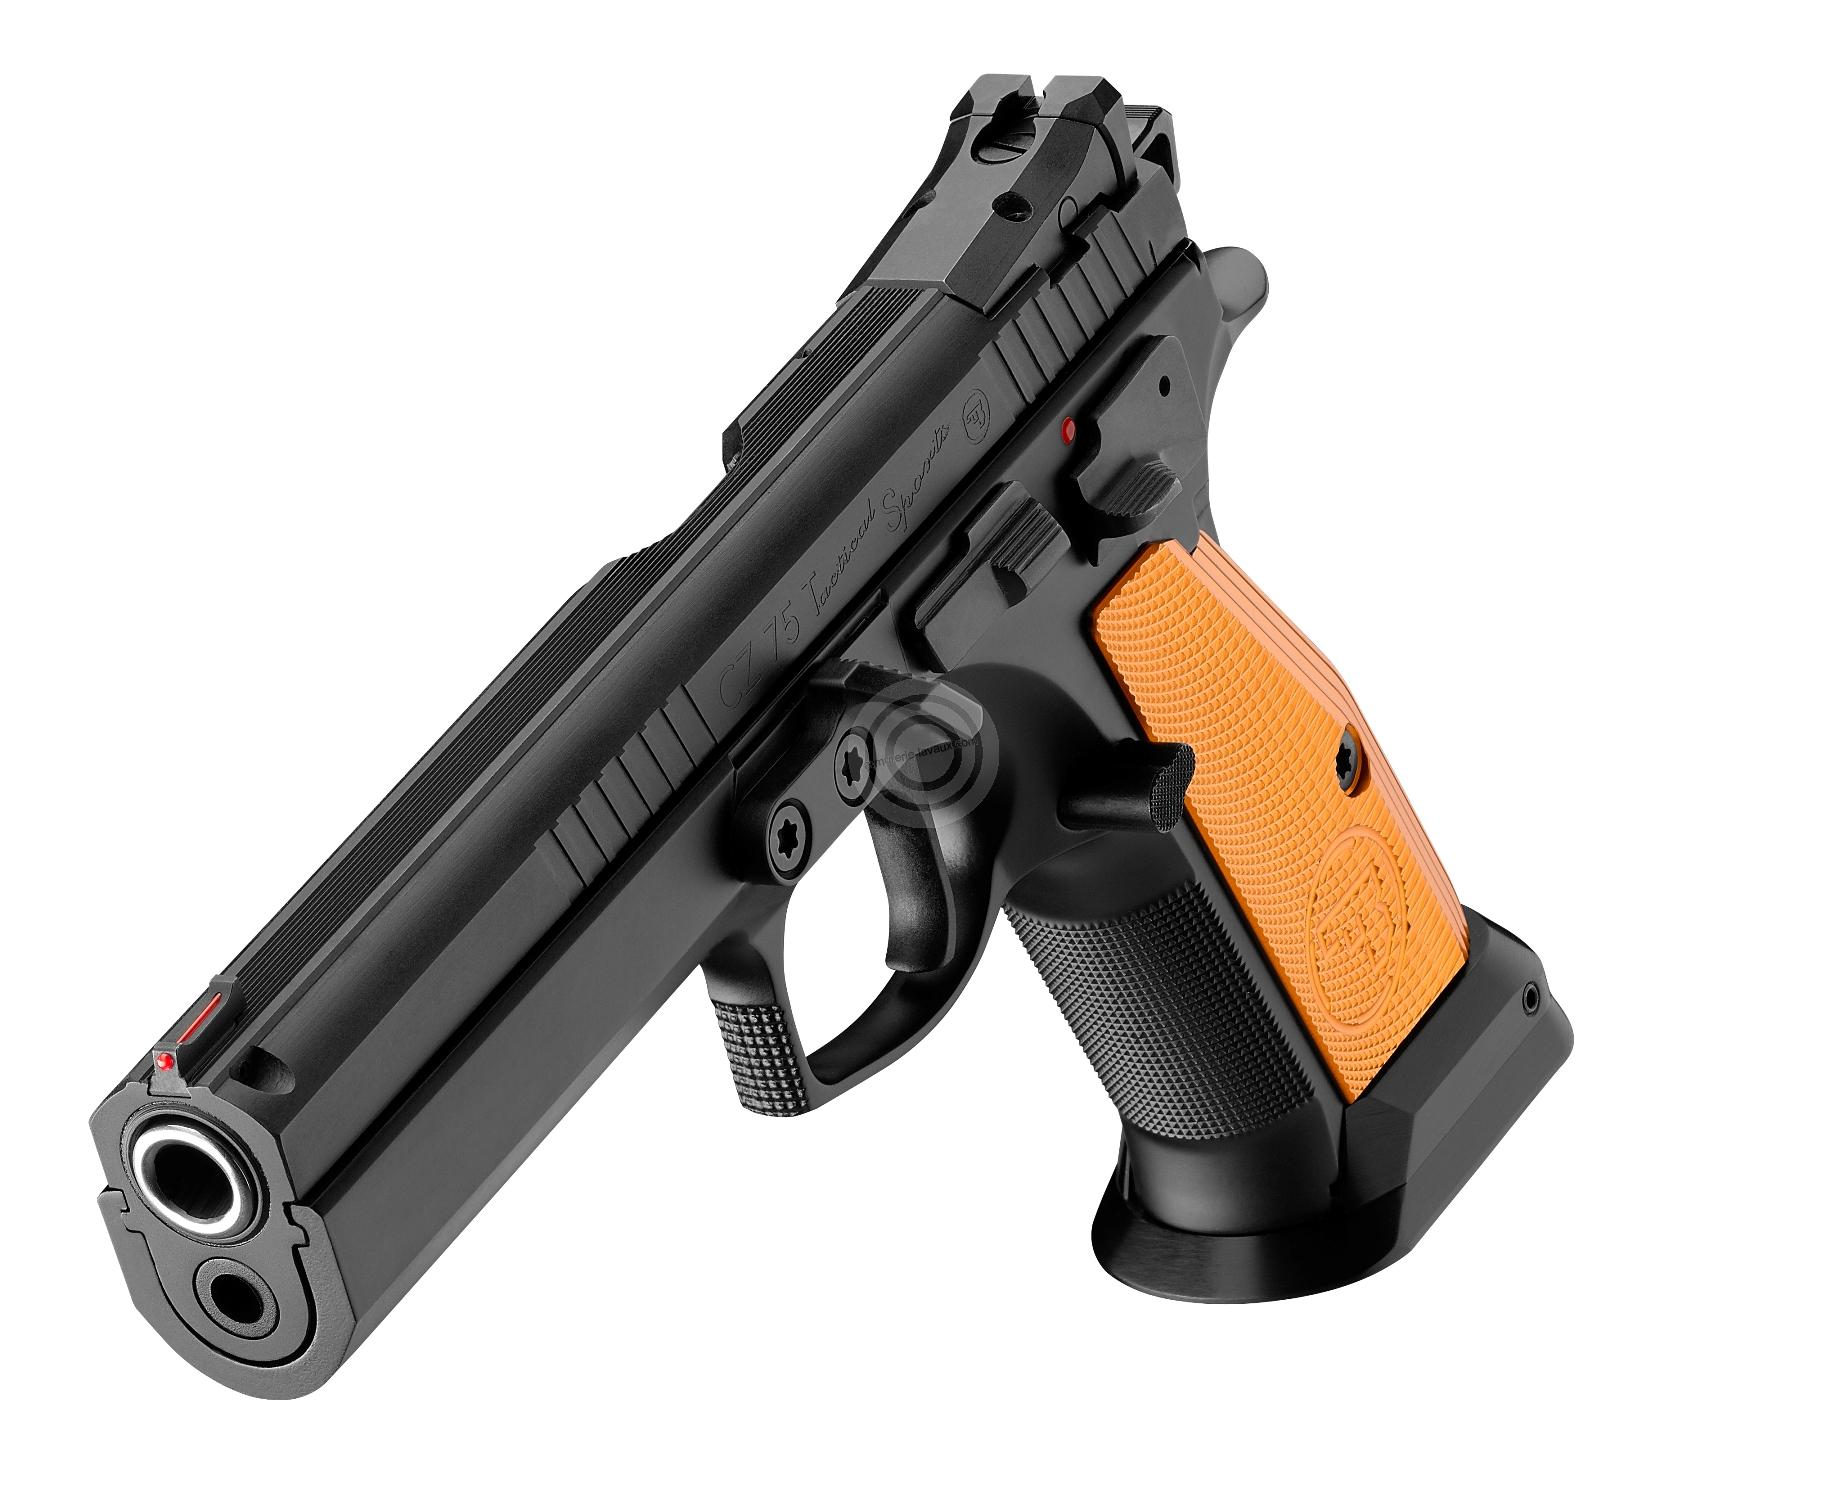 pistolet cz 75 tactical sport orange calibre 9x19